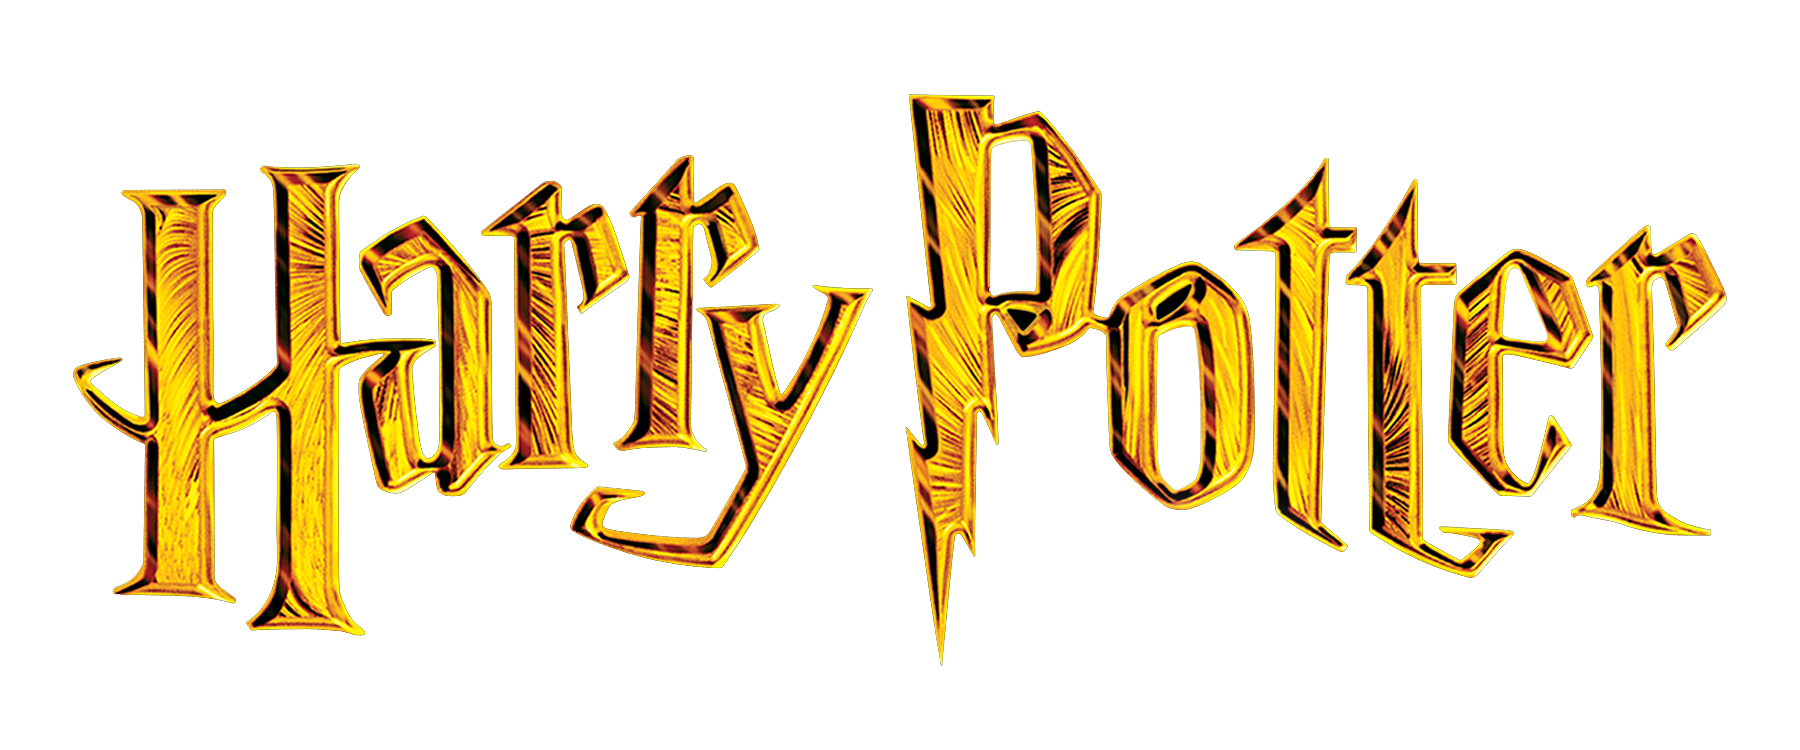 Harry potter logo png. Symbol meaning history and